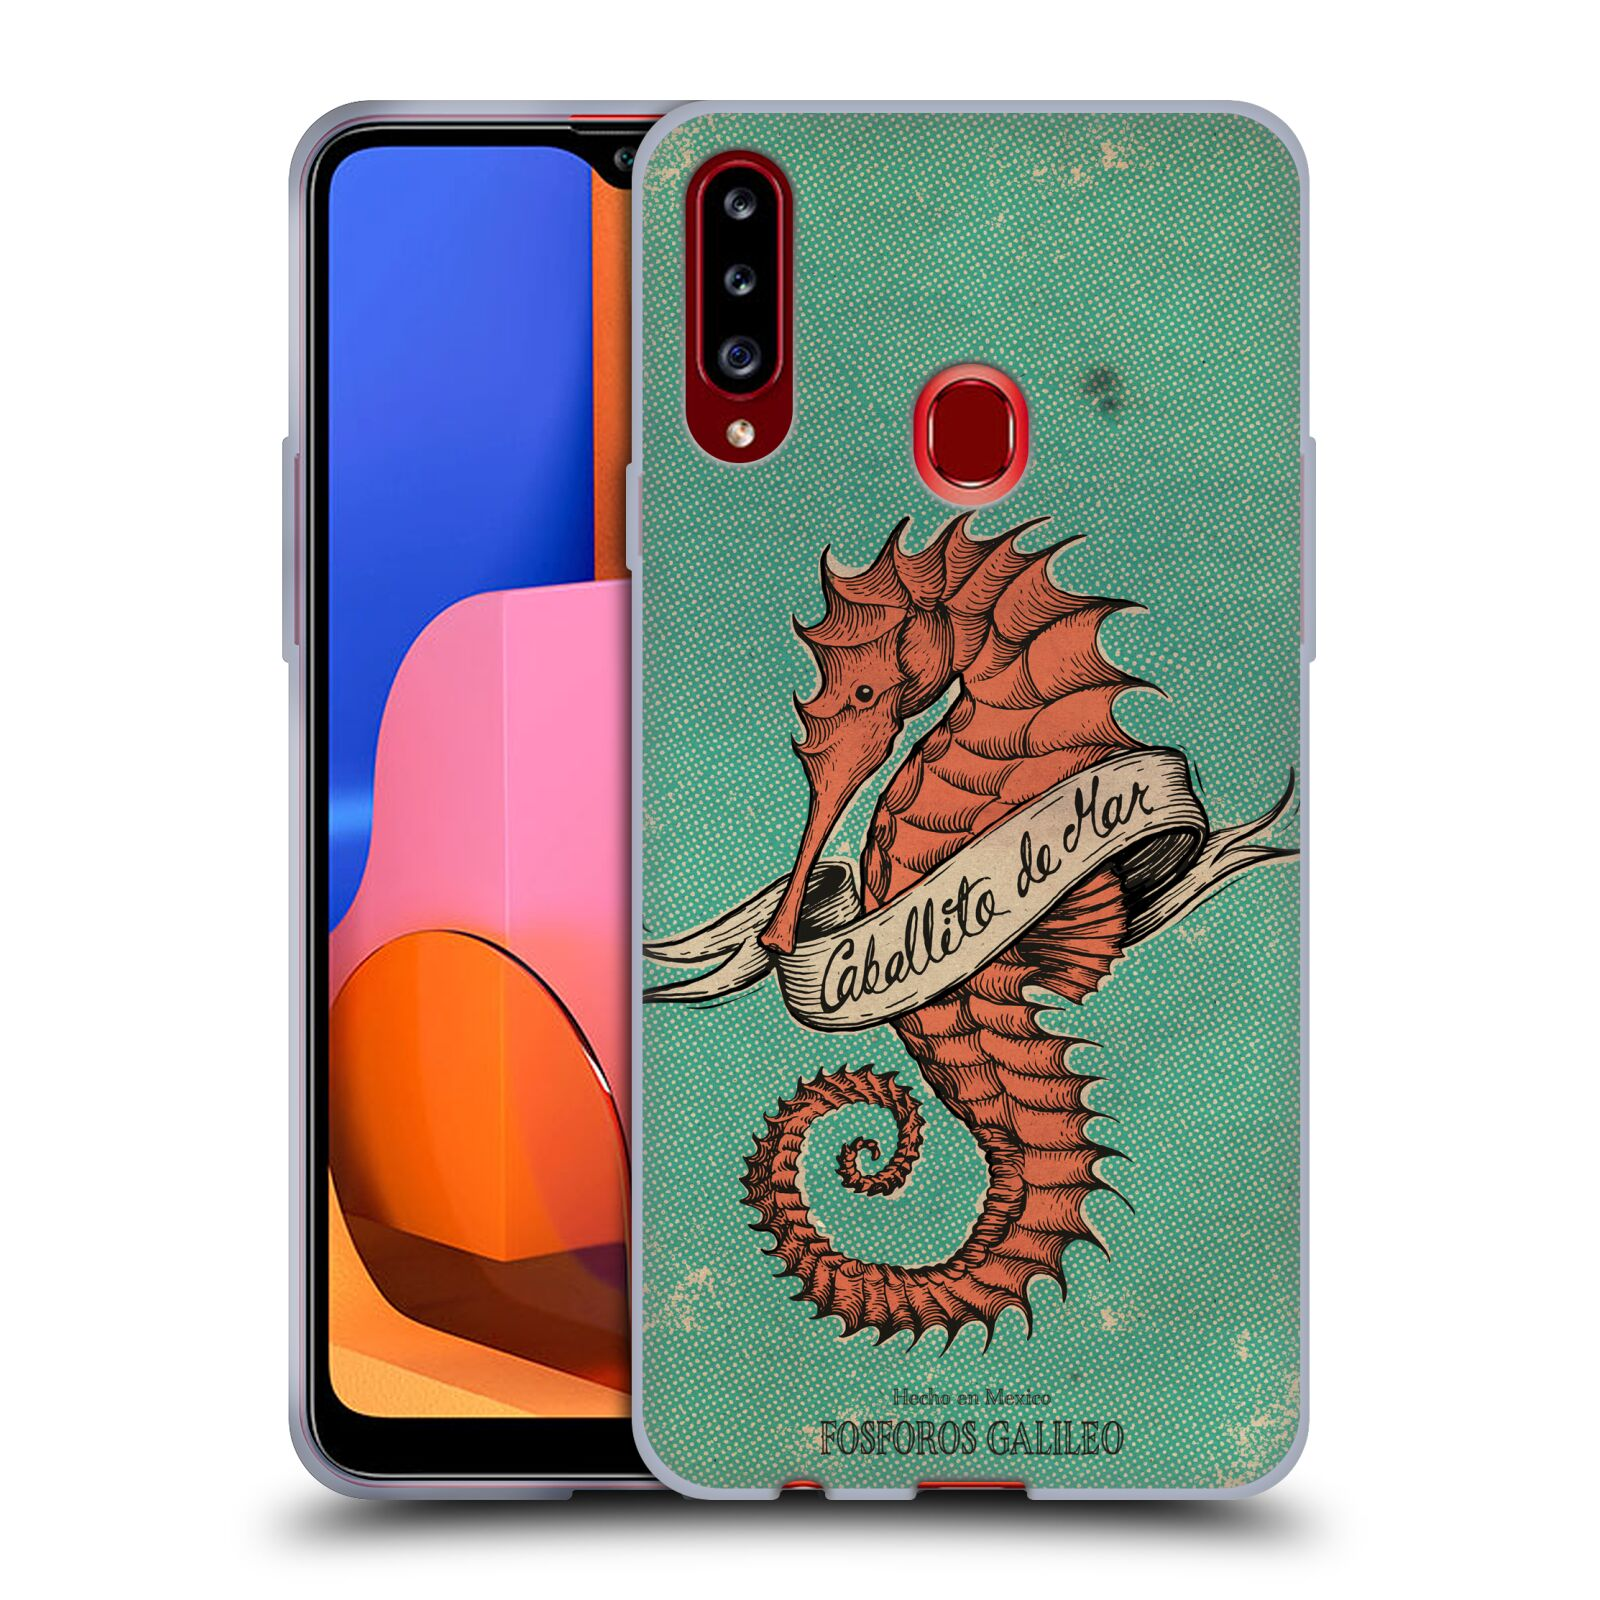 Official Fosforos Galileo Diseños Caballito De Mar Gel Case for Samsung Galaxy A20s (2019)